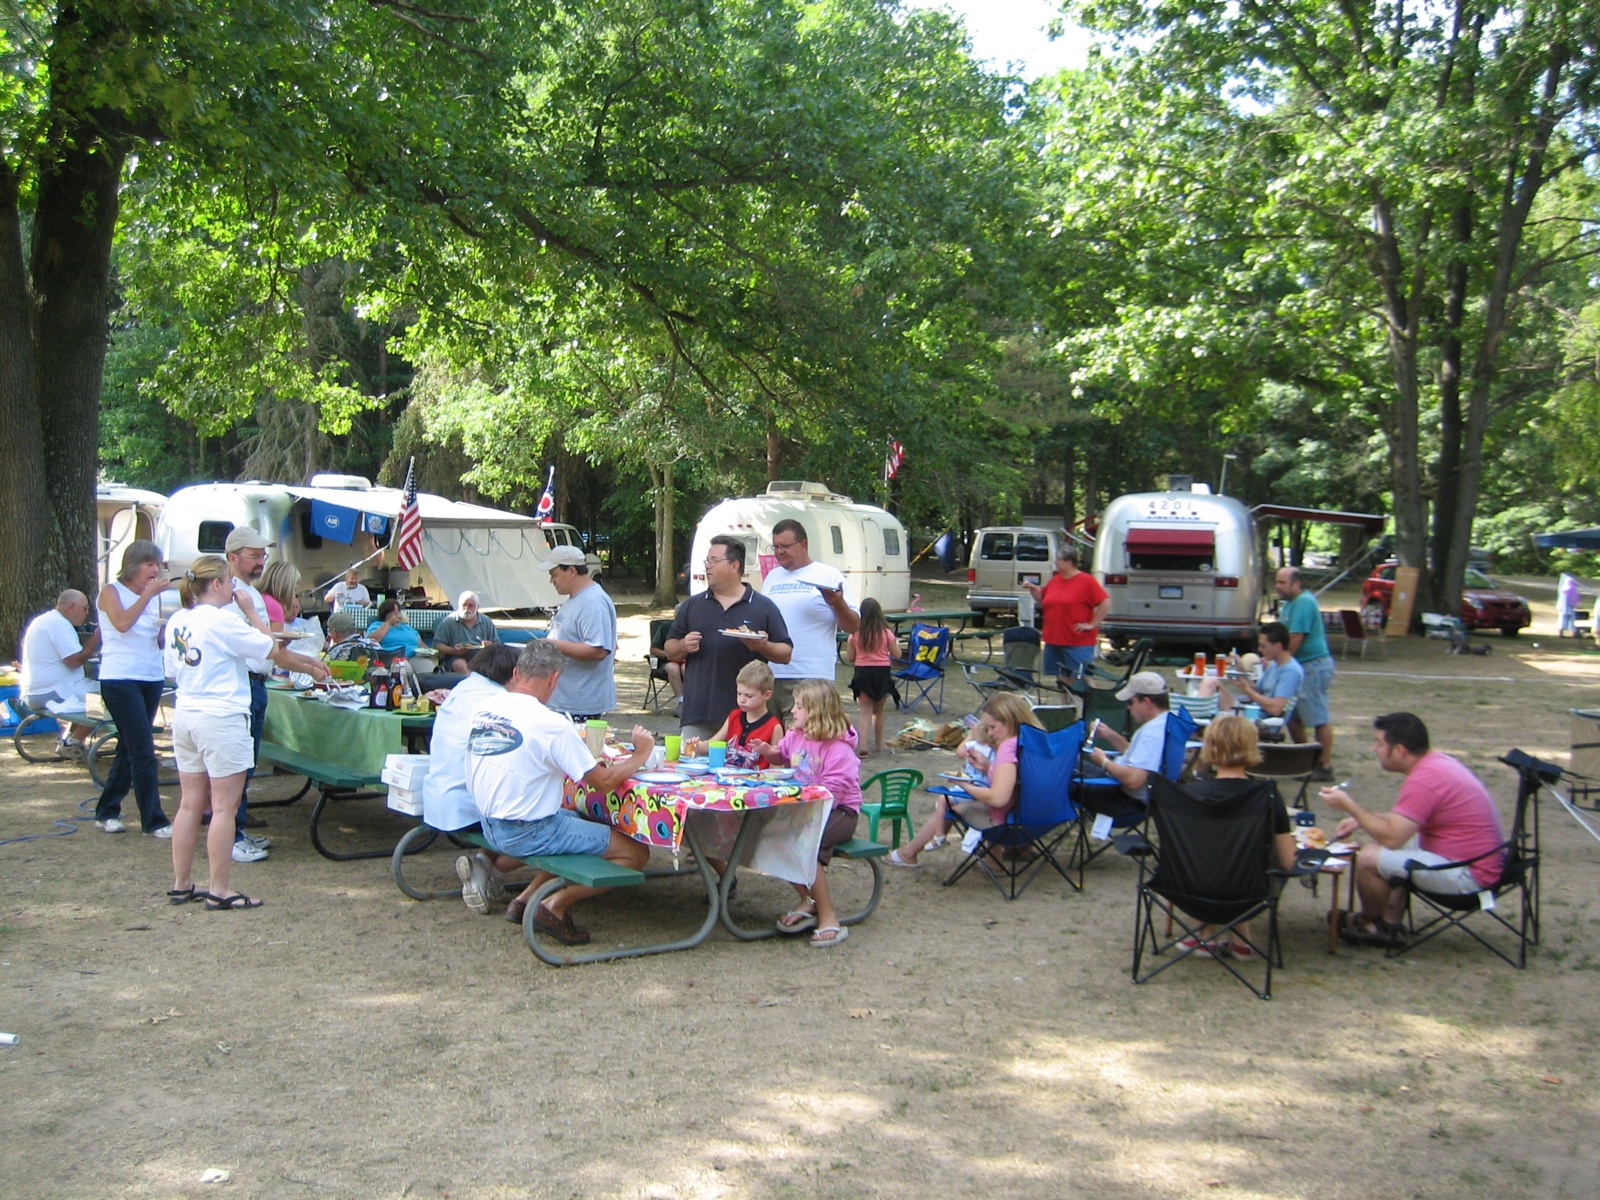 Click image for larger version  Name:Pot Luck Breakfast #2.jpg Views:59 Size:900.8 KB ID:42943